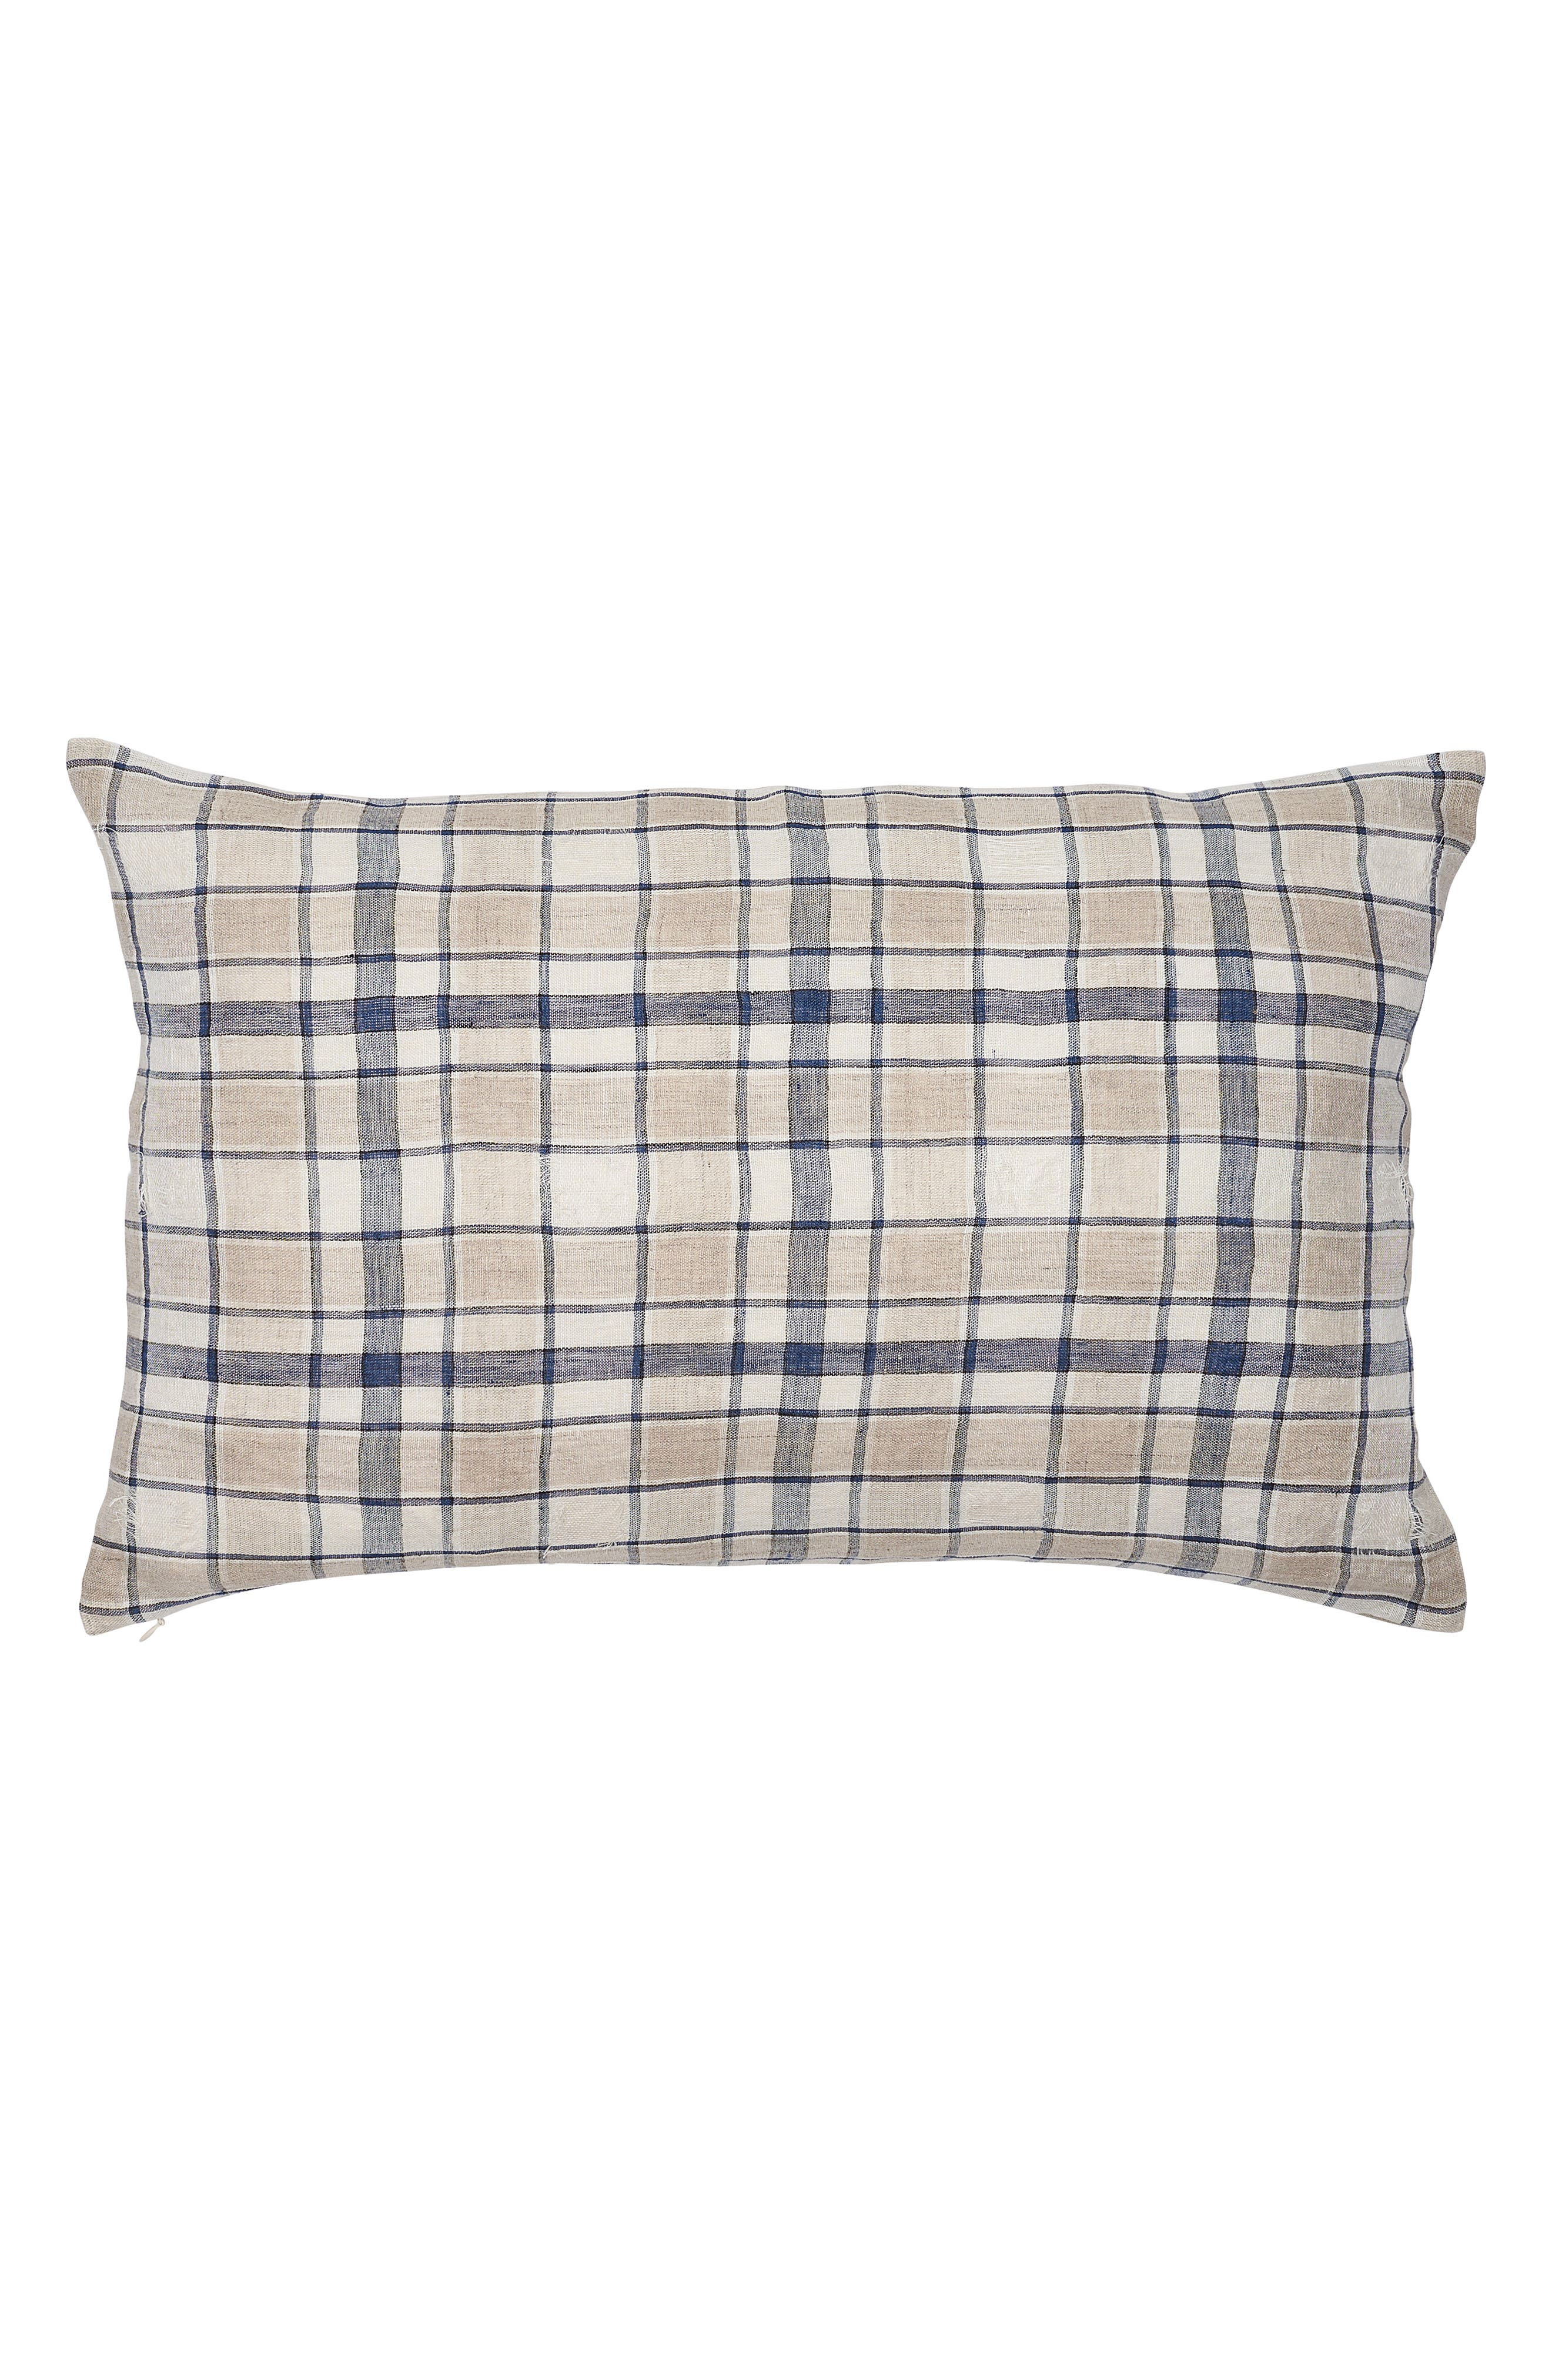 EADIE LIFESTYLE, Caddy Scatter Accent Pillow, Main thumbnail 1, color, NAVY MULTI